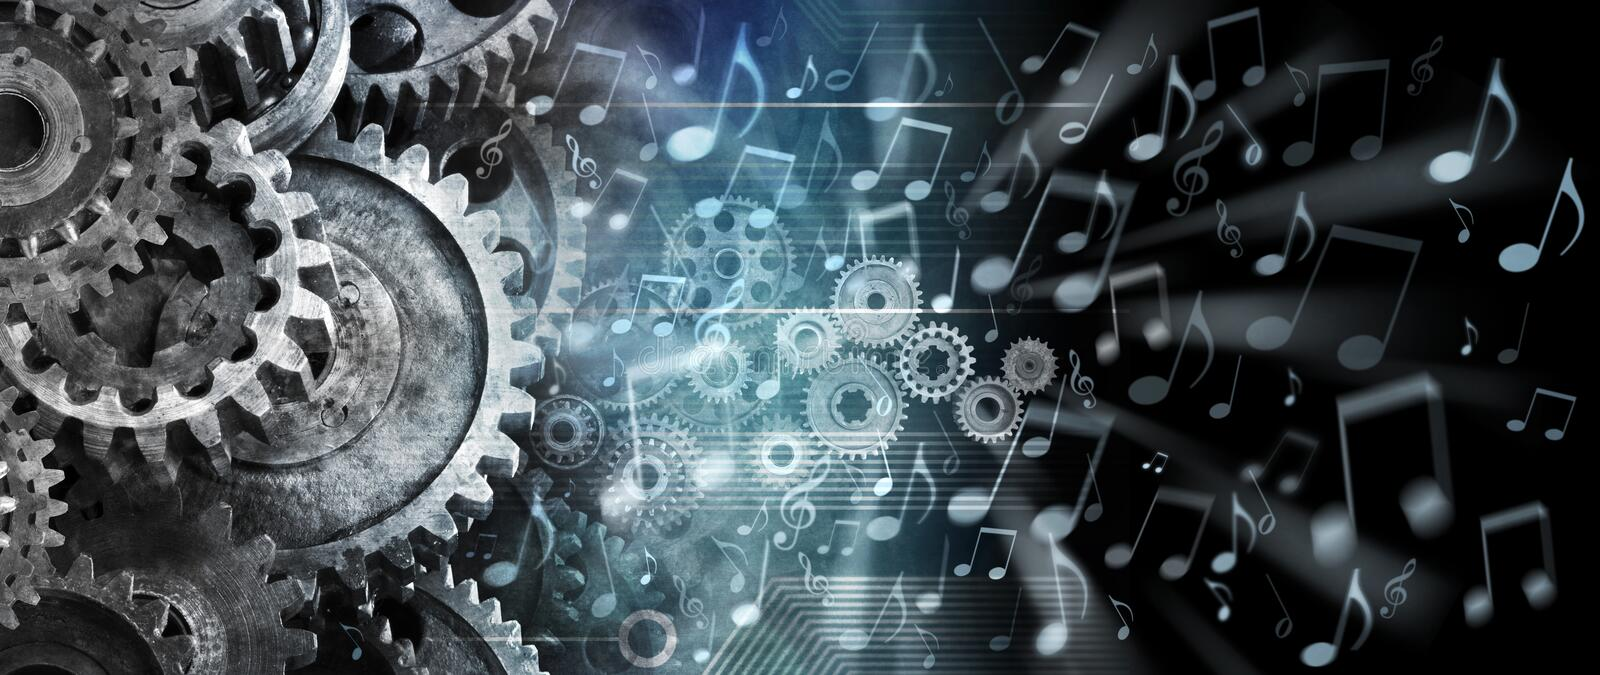 Music Streaming Cogs Technology Background. A conceptual image about music and technology streaming